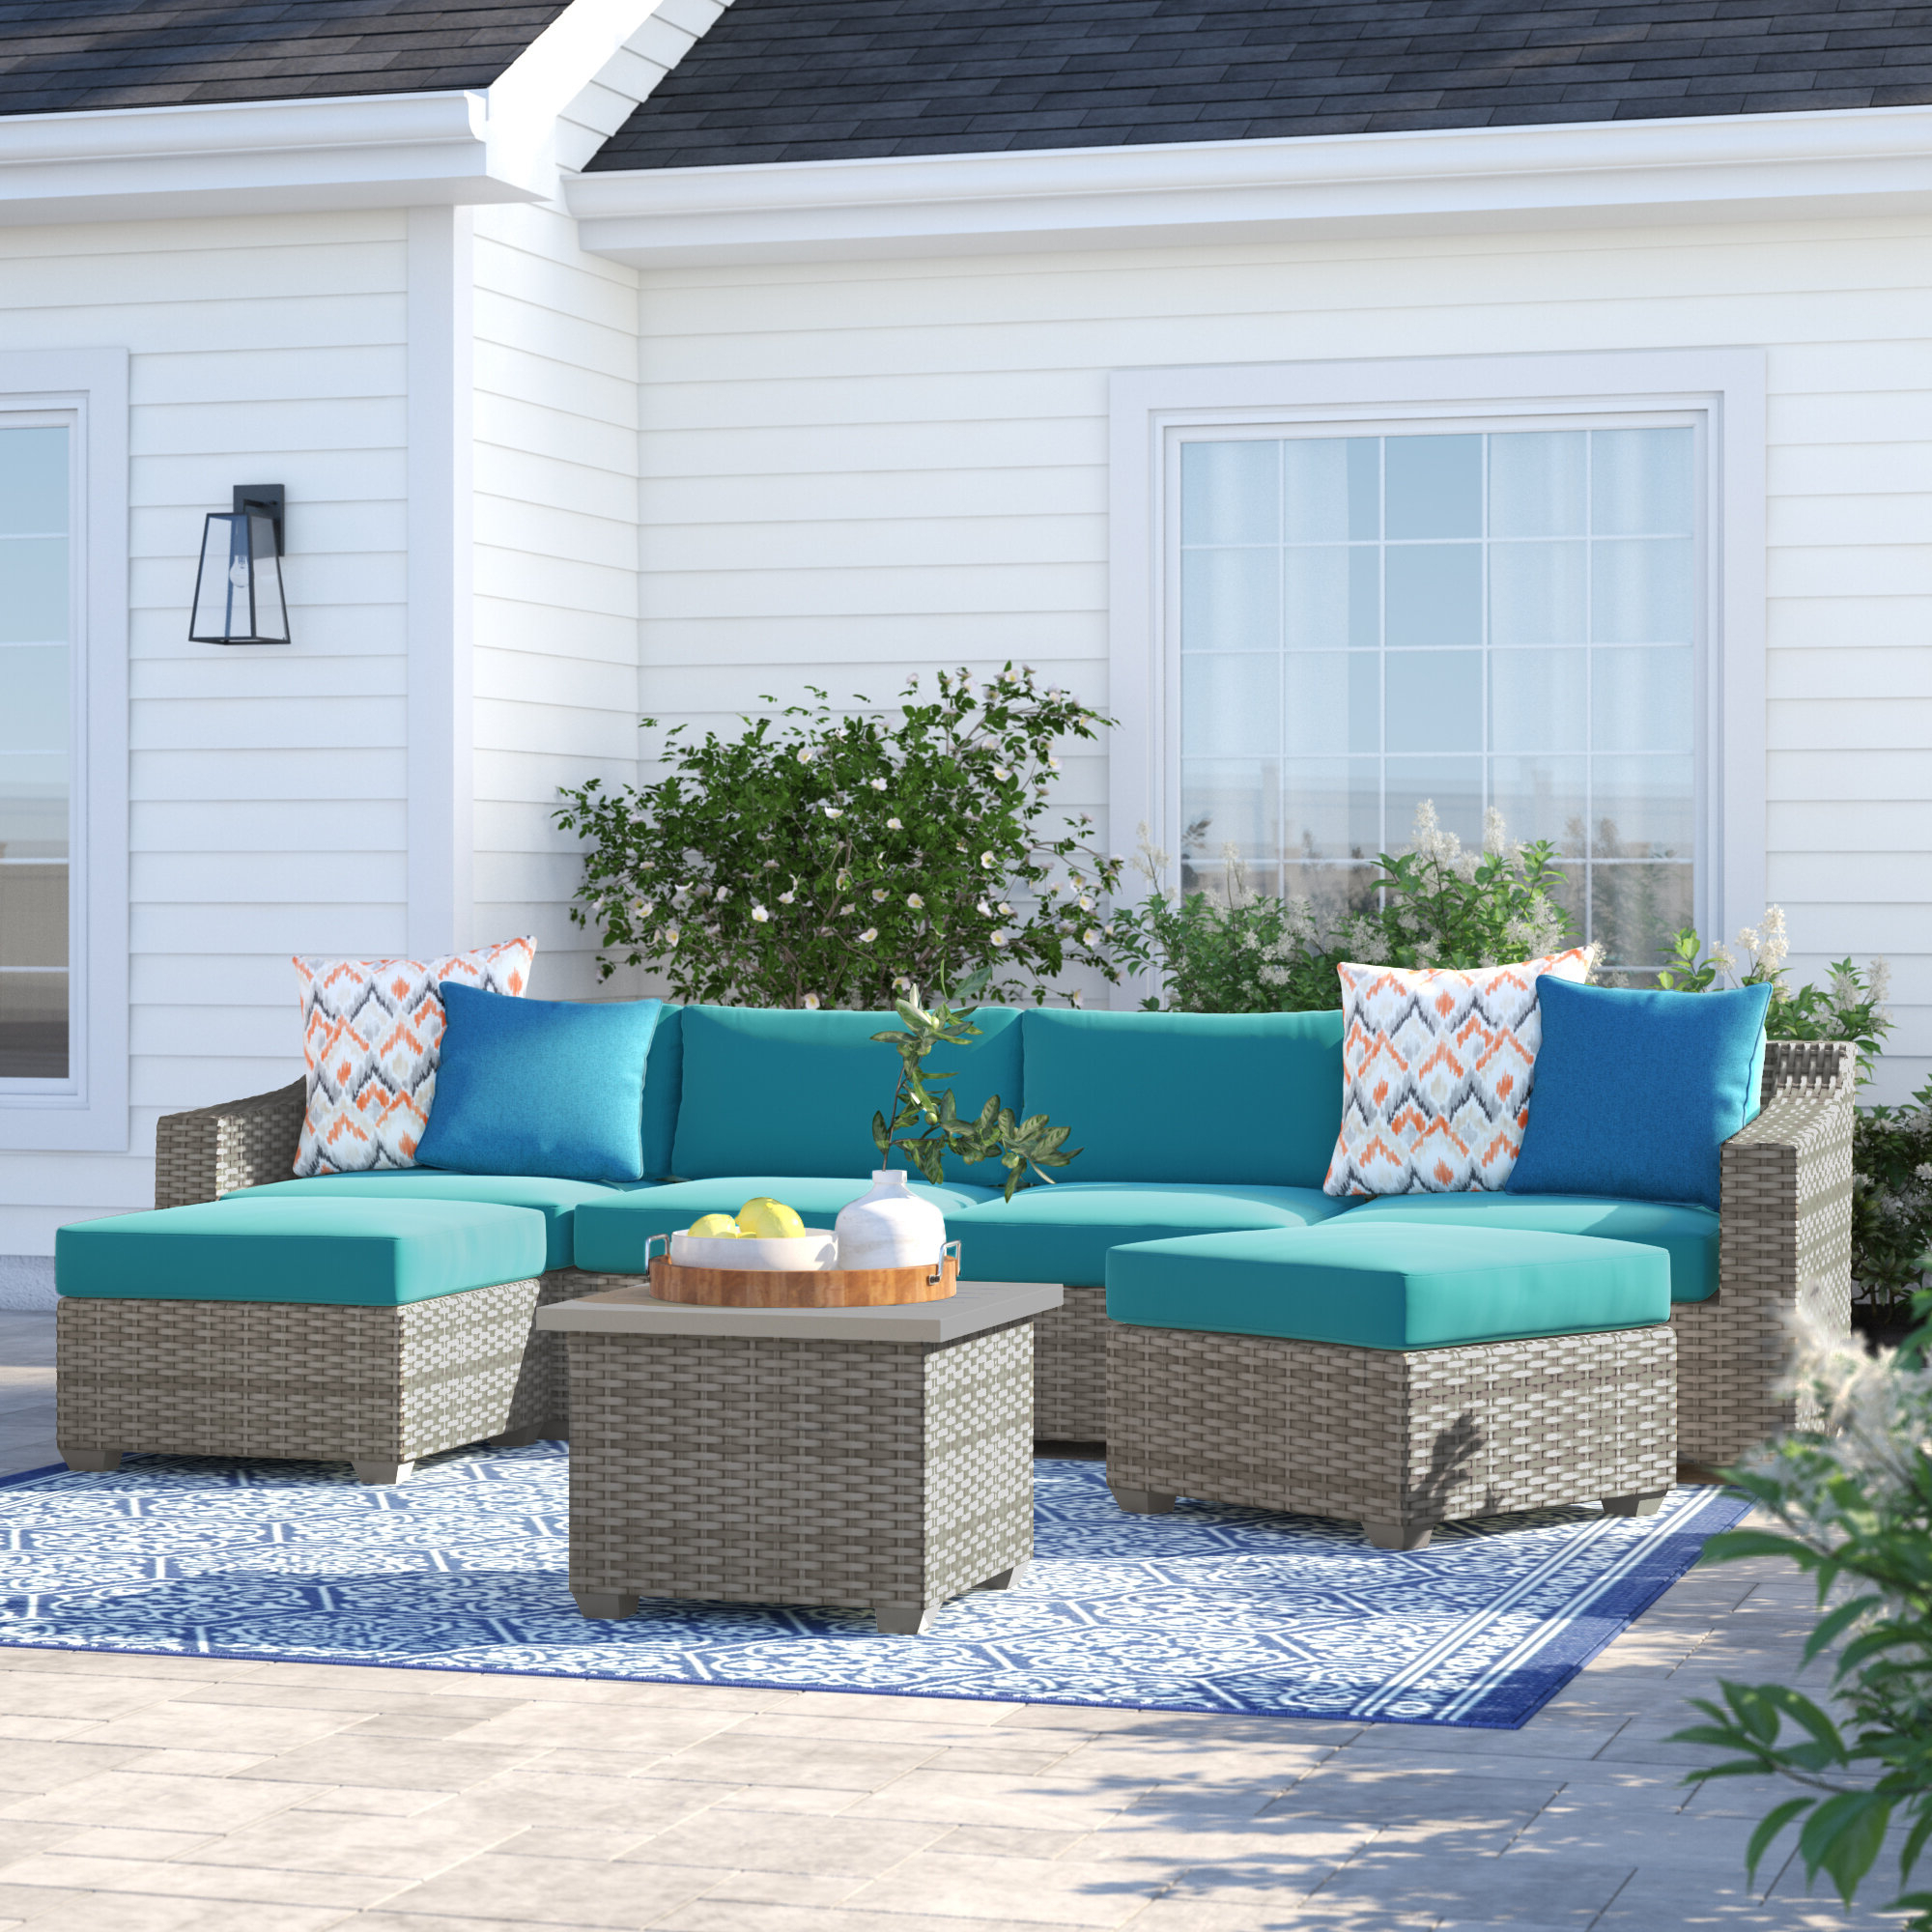 Best And Newest Falmouth 7 Piece Sectional Seating Group With Cushions With Falmouth Patio Sofas With Cushions (Gallery 3 of 20)